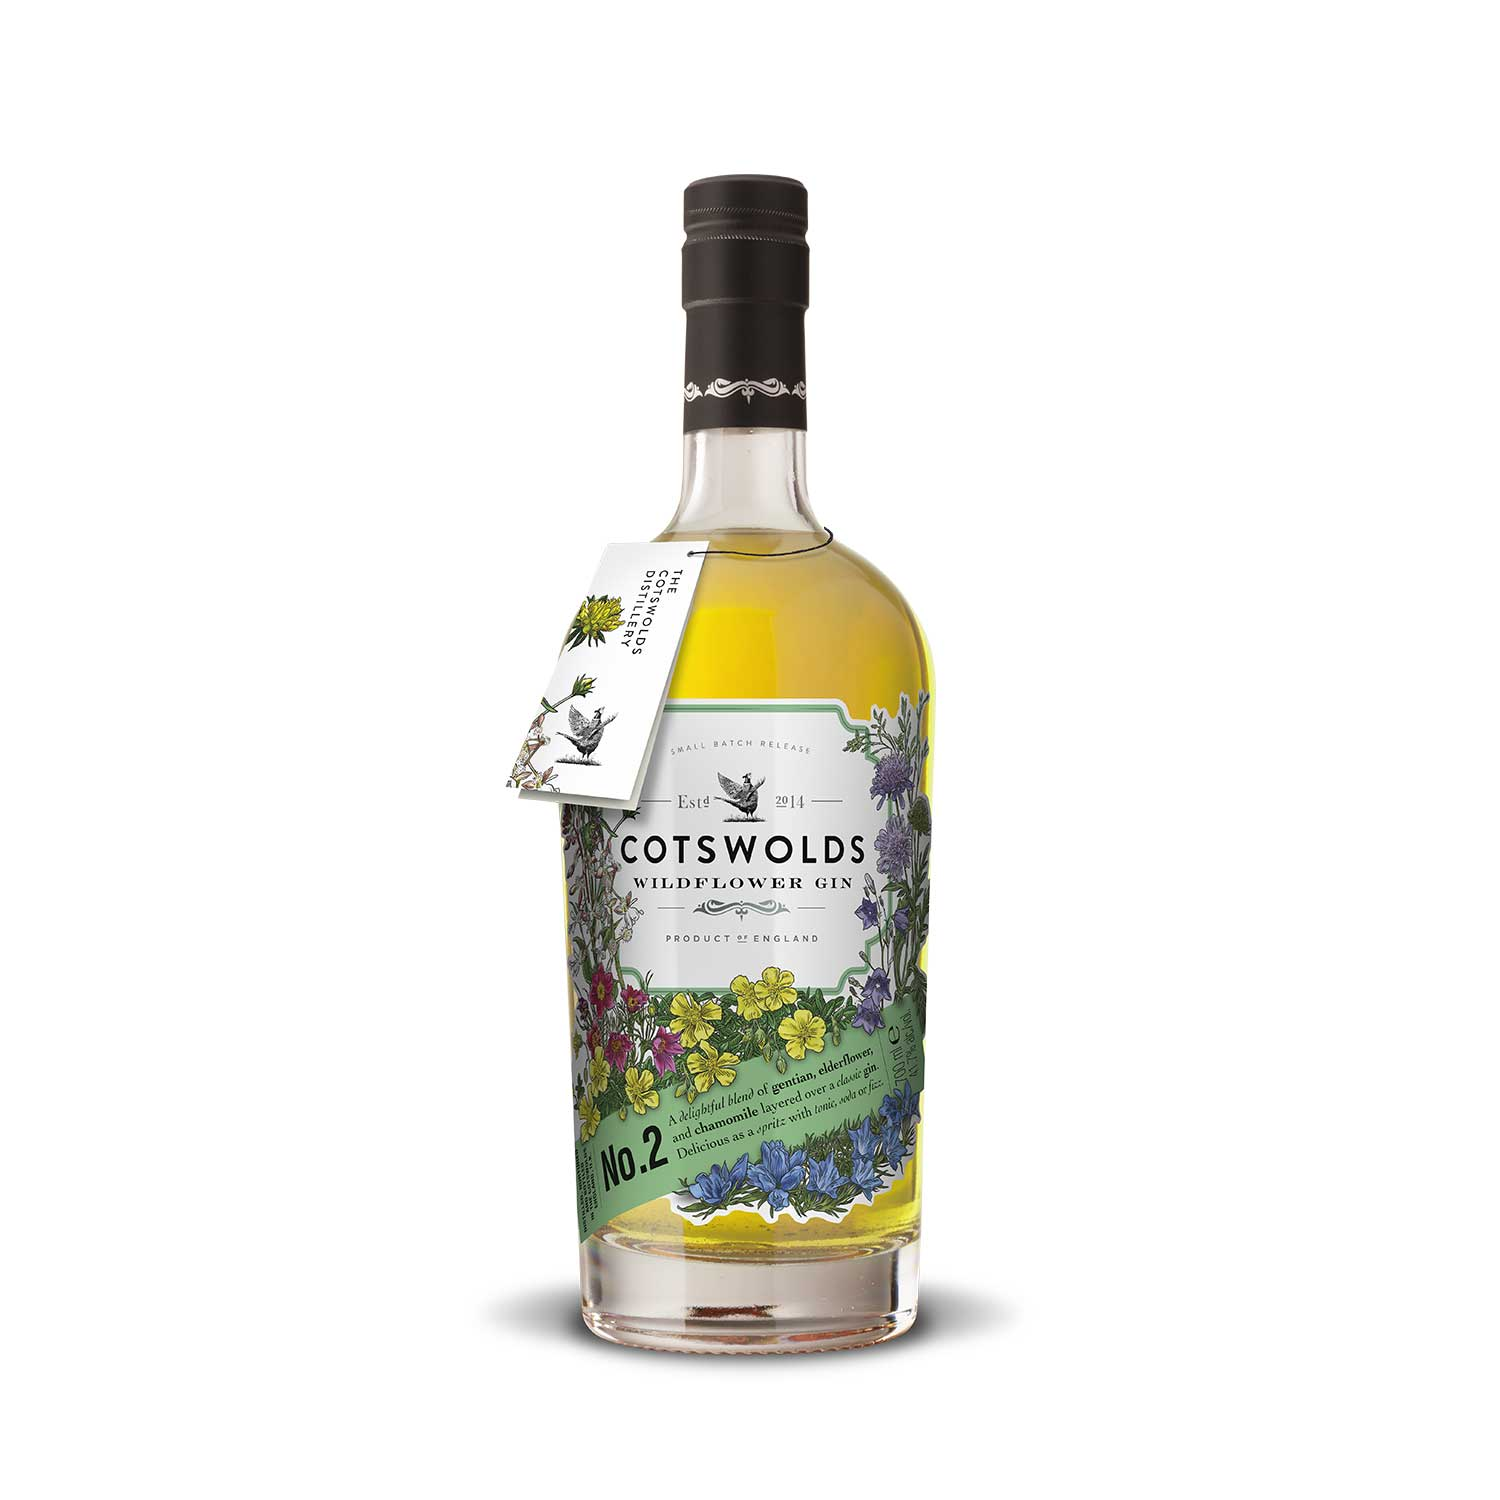 Cotswold Wildflower No.2 Gin Bottle